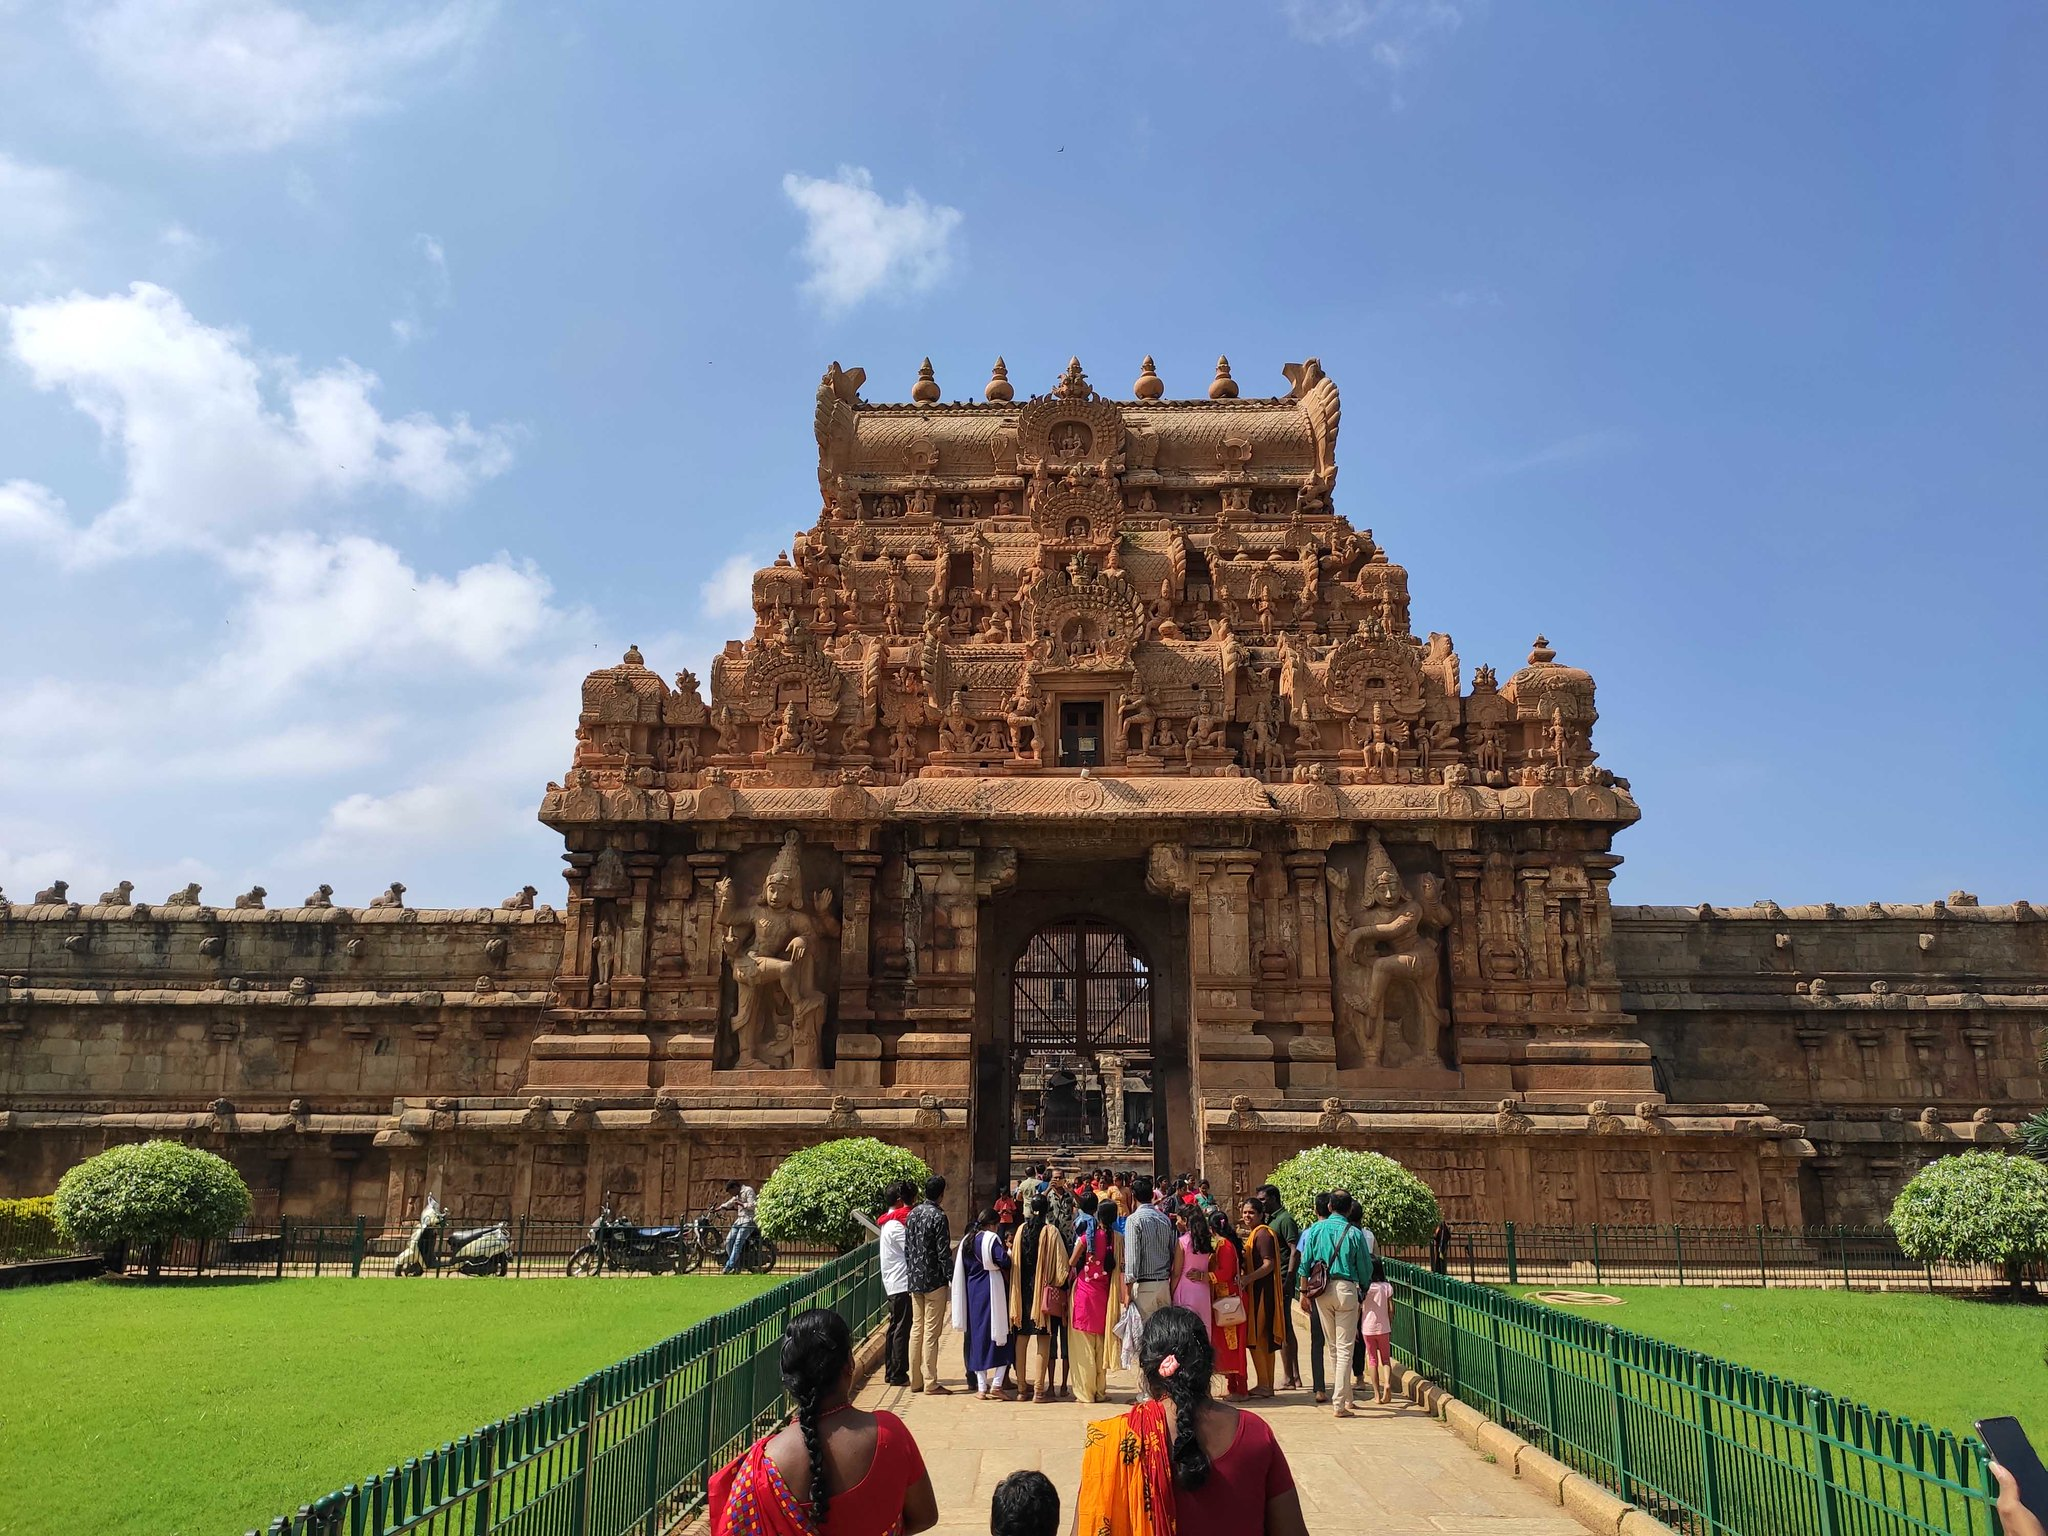 A Visit To The Great Living Chola Tempes In Tamil Nadu